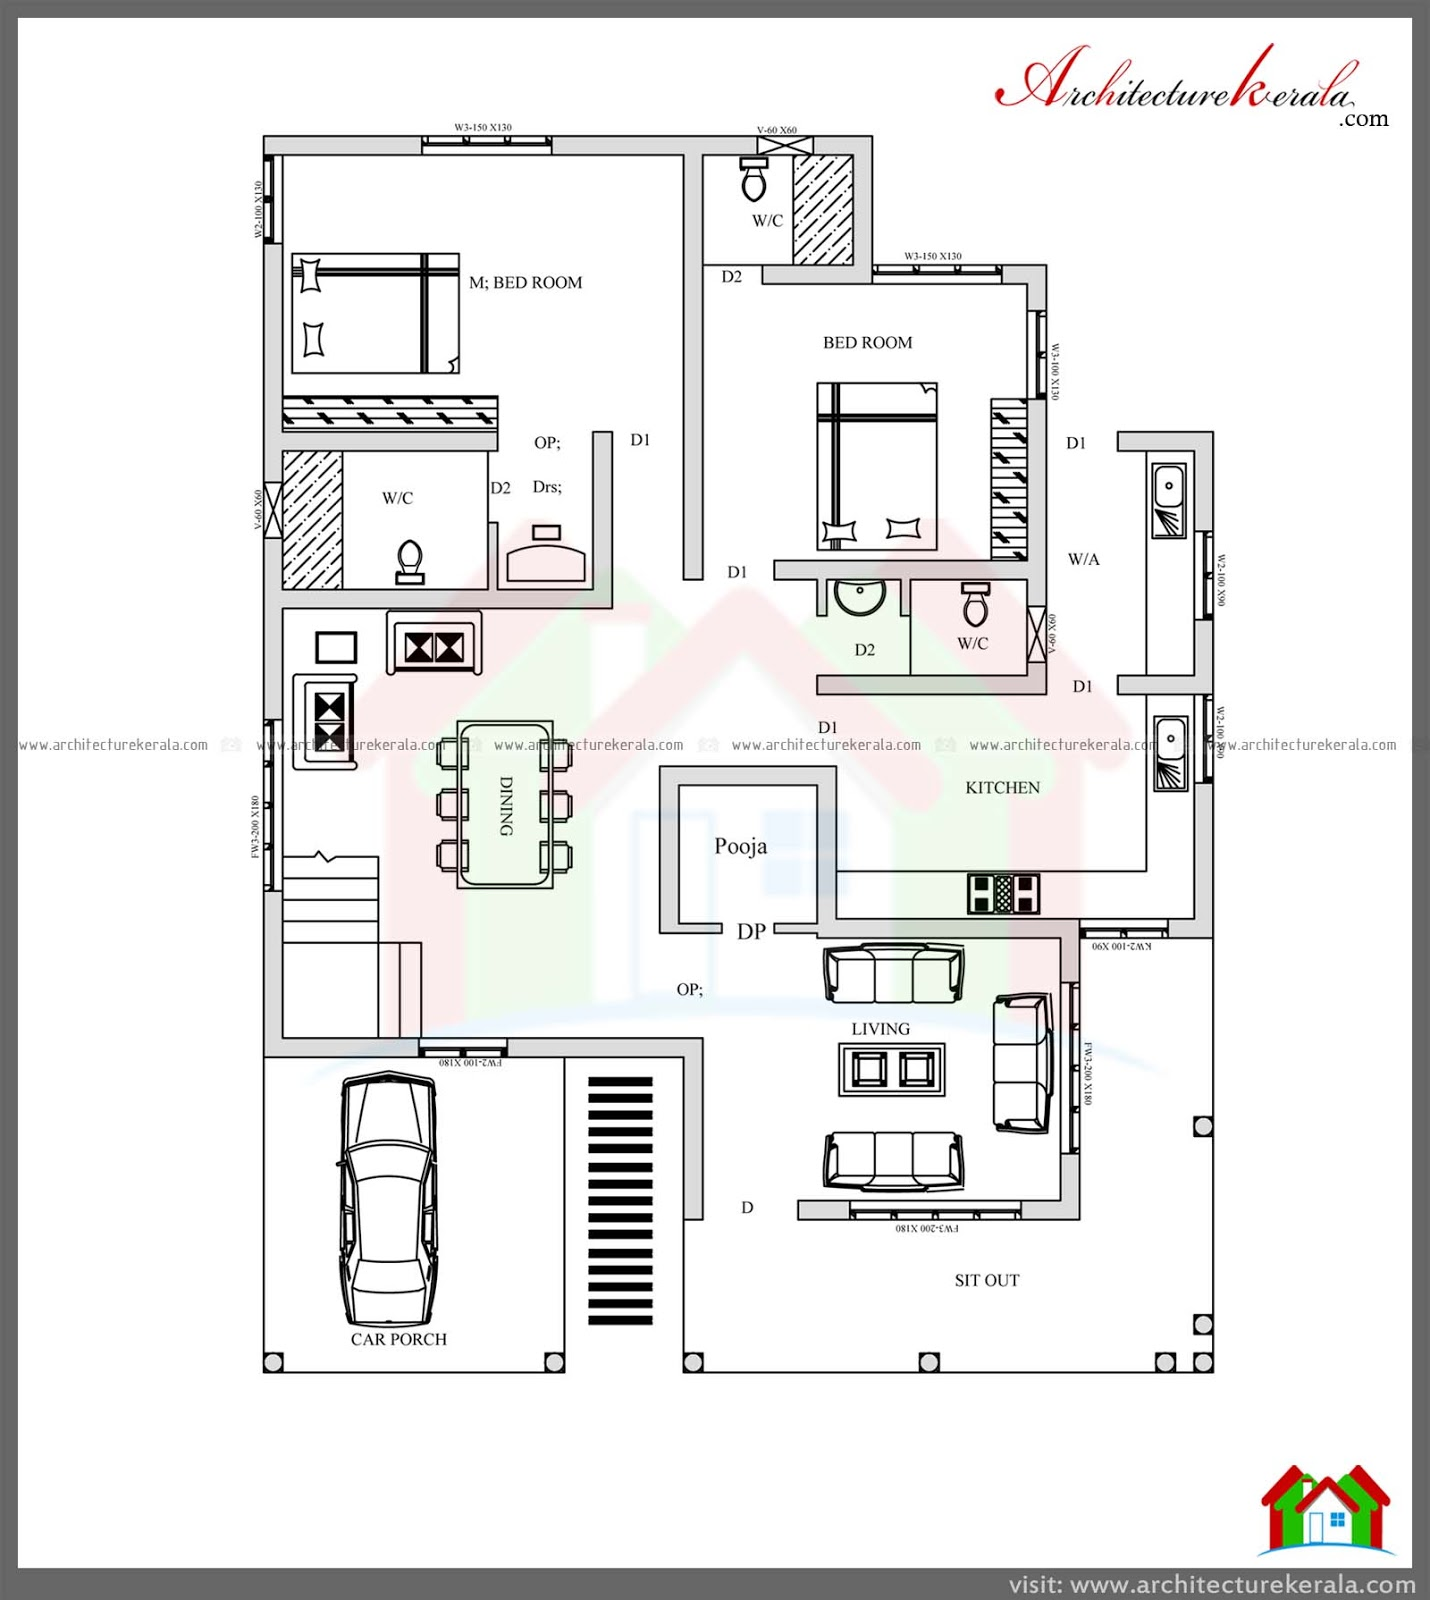 Stunning 4 bedroom kerala home design with pooja room free for Kerala home designs and floor plans